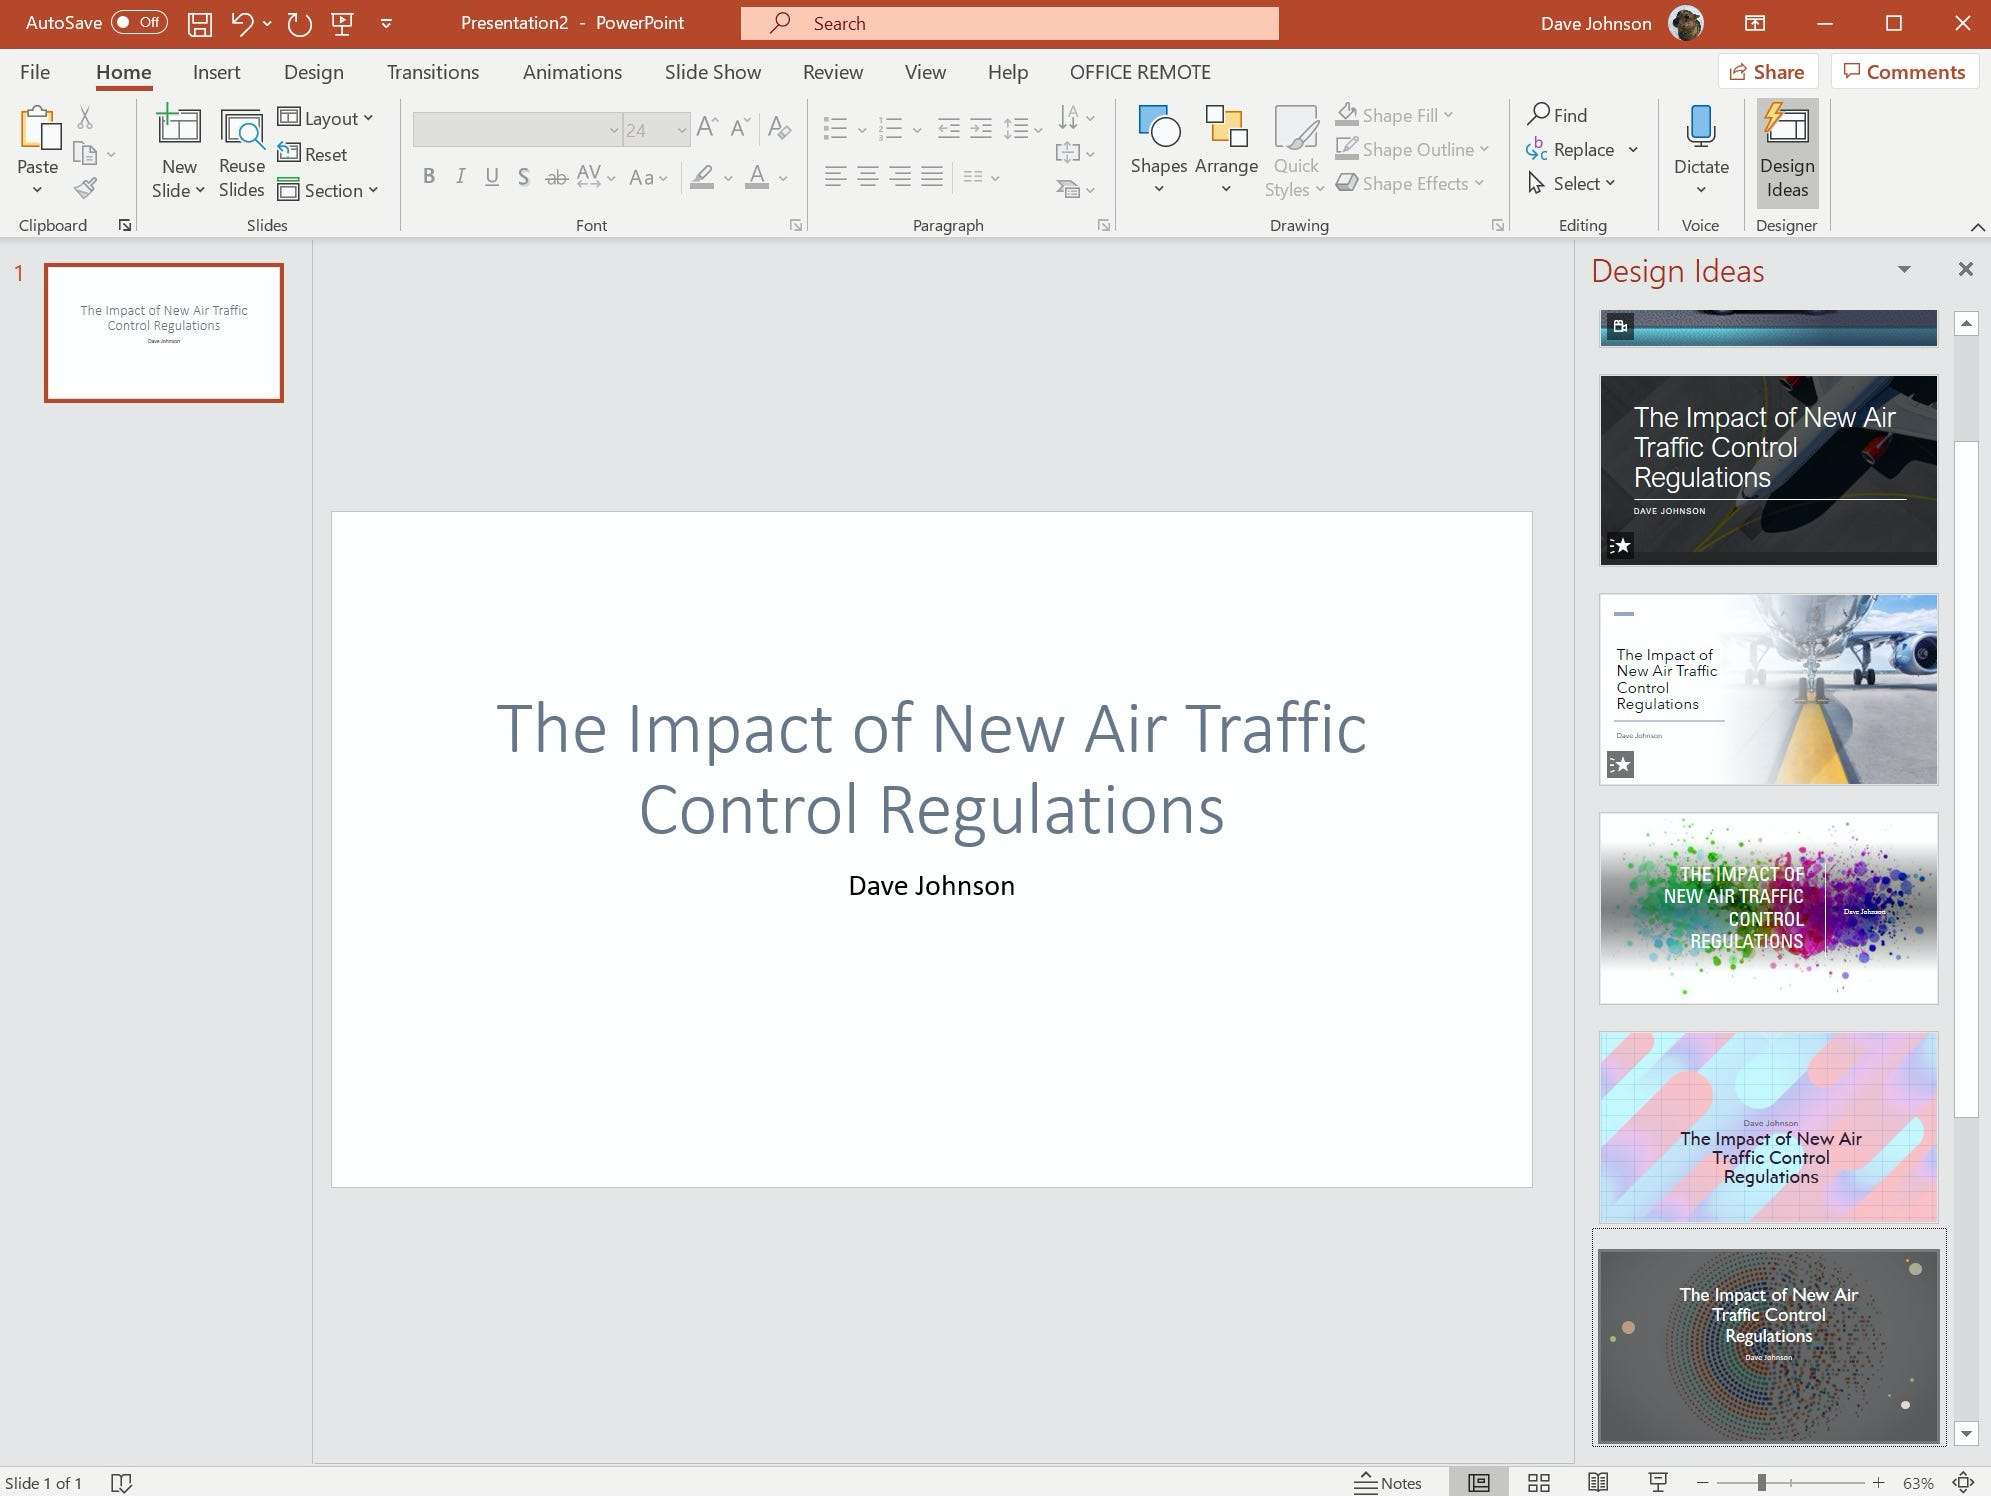 How to use PowerPoint Designer to create professionally designed slideshow presentations